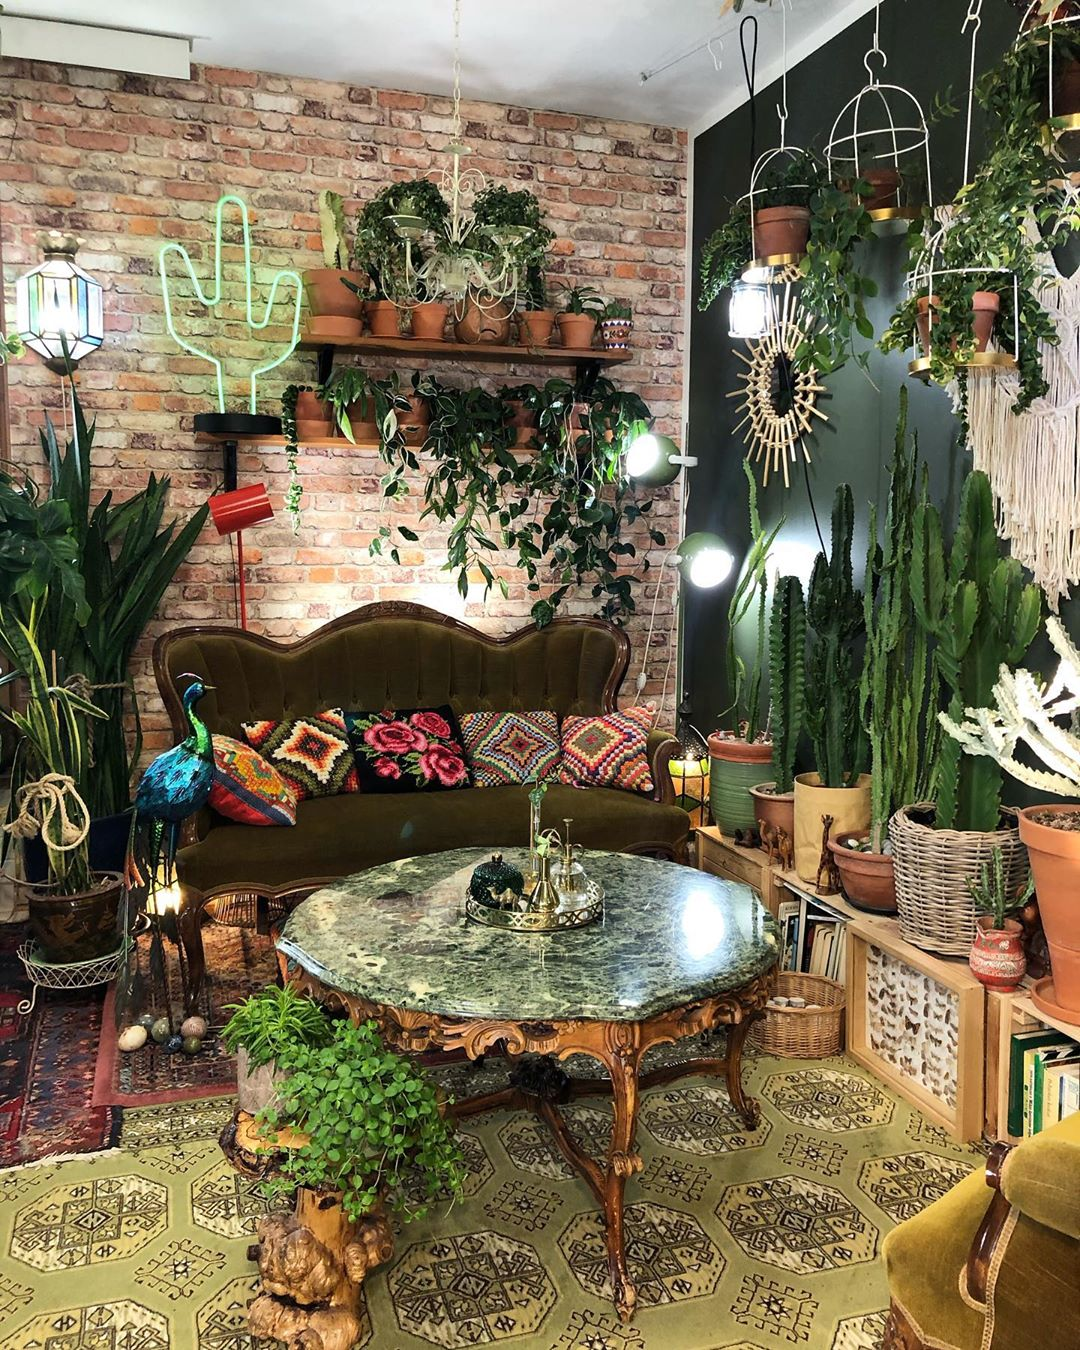 Green Sunday 🌿🌵 Have A Great Day 💚💚💚 Home - Living Room